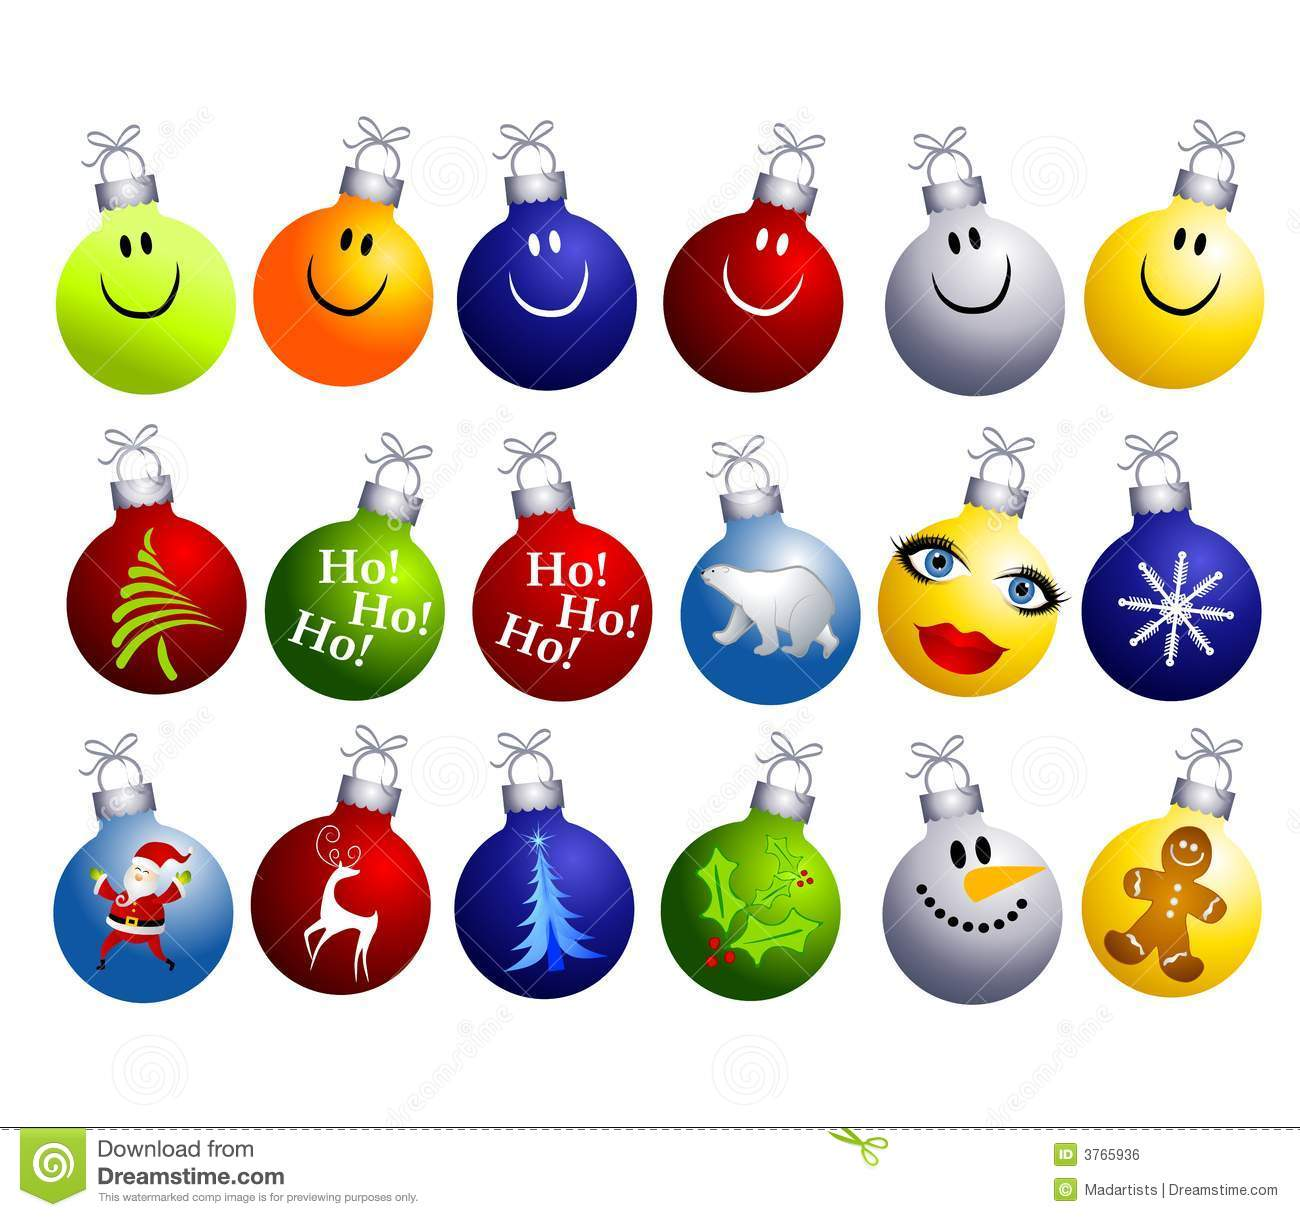 Christmas decorations clipart images - Assorted Christmas Ornaments Clip Art